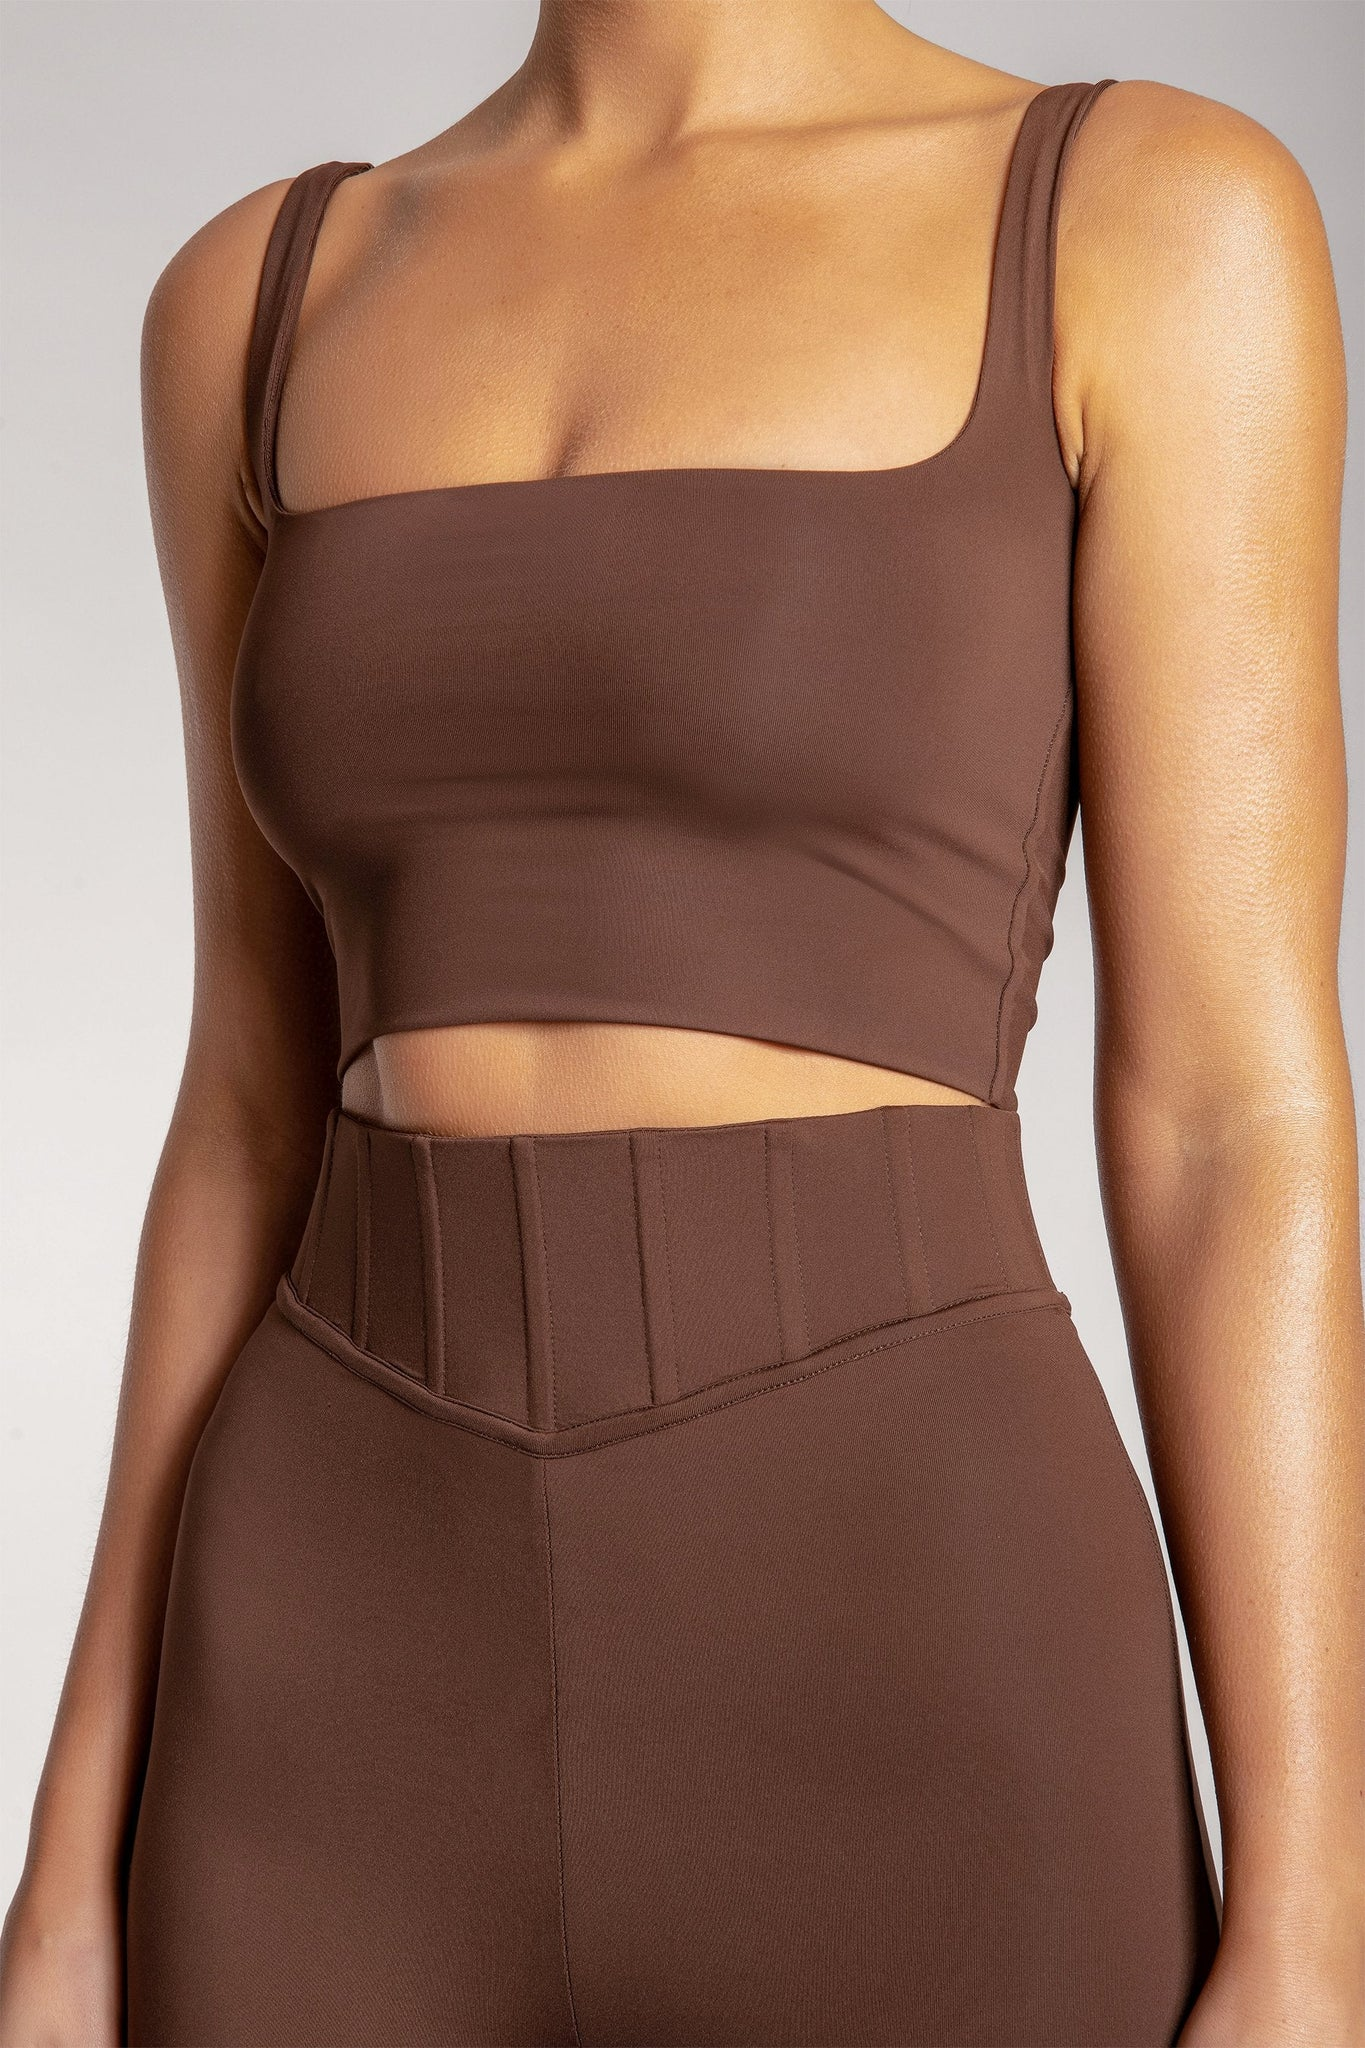 Chaya High Waisted Boned Bike Short - Chocolate - MESHKI